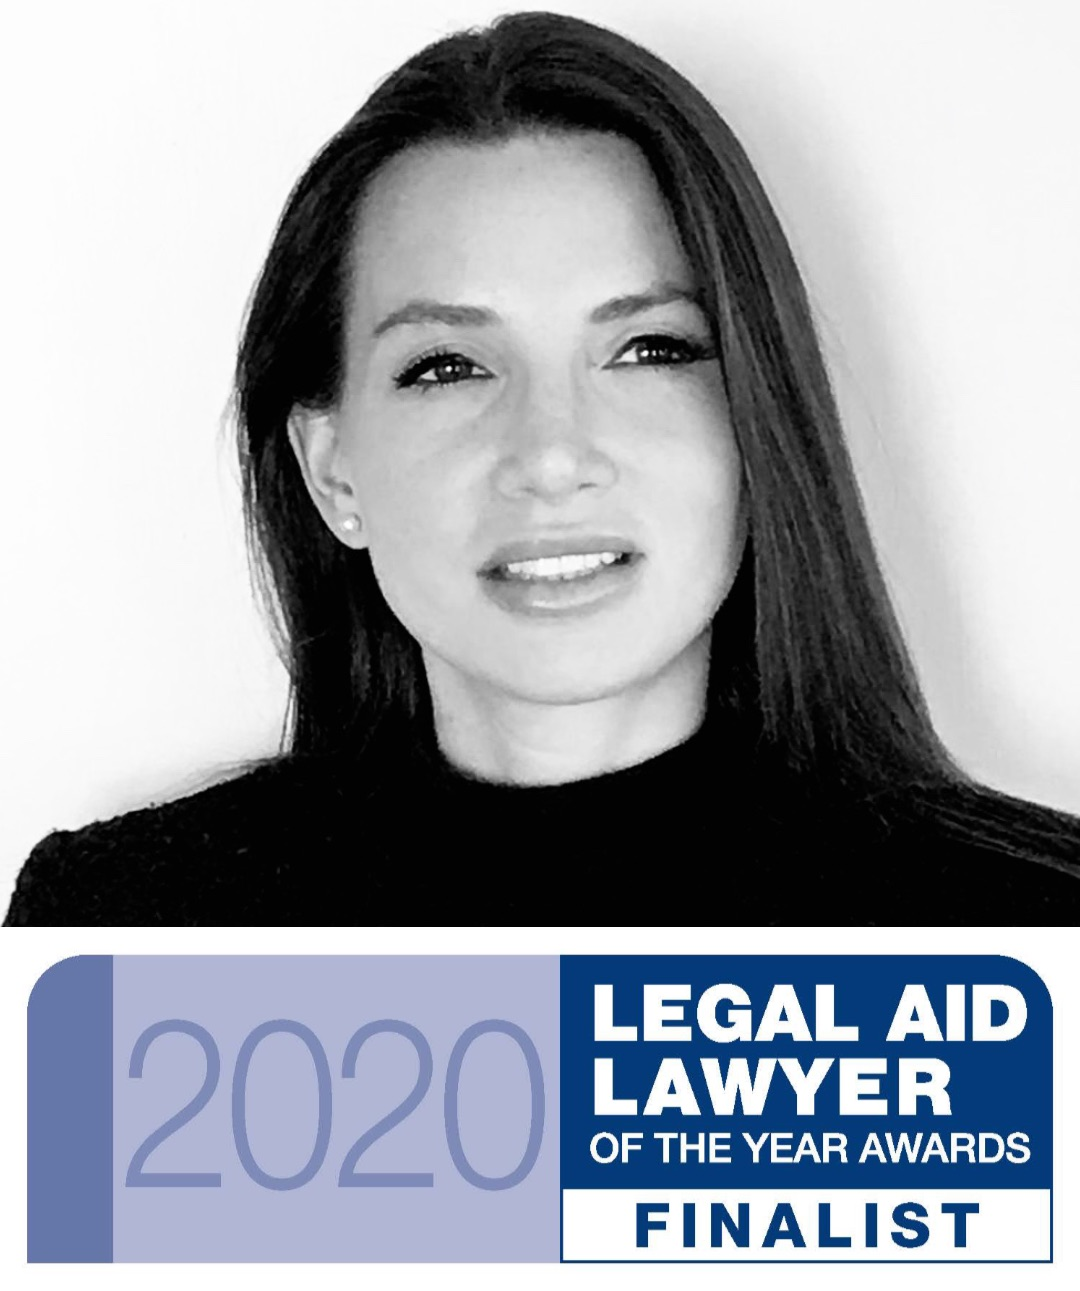 Philippa Southwell has been nominated by LAPG for Legal Aid Lawyer of the Year awards 2020.